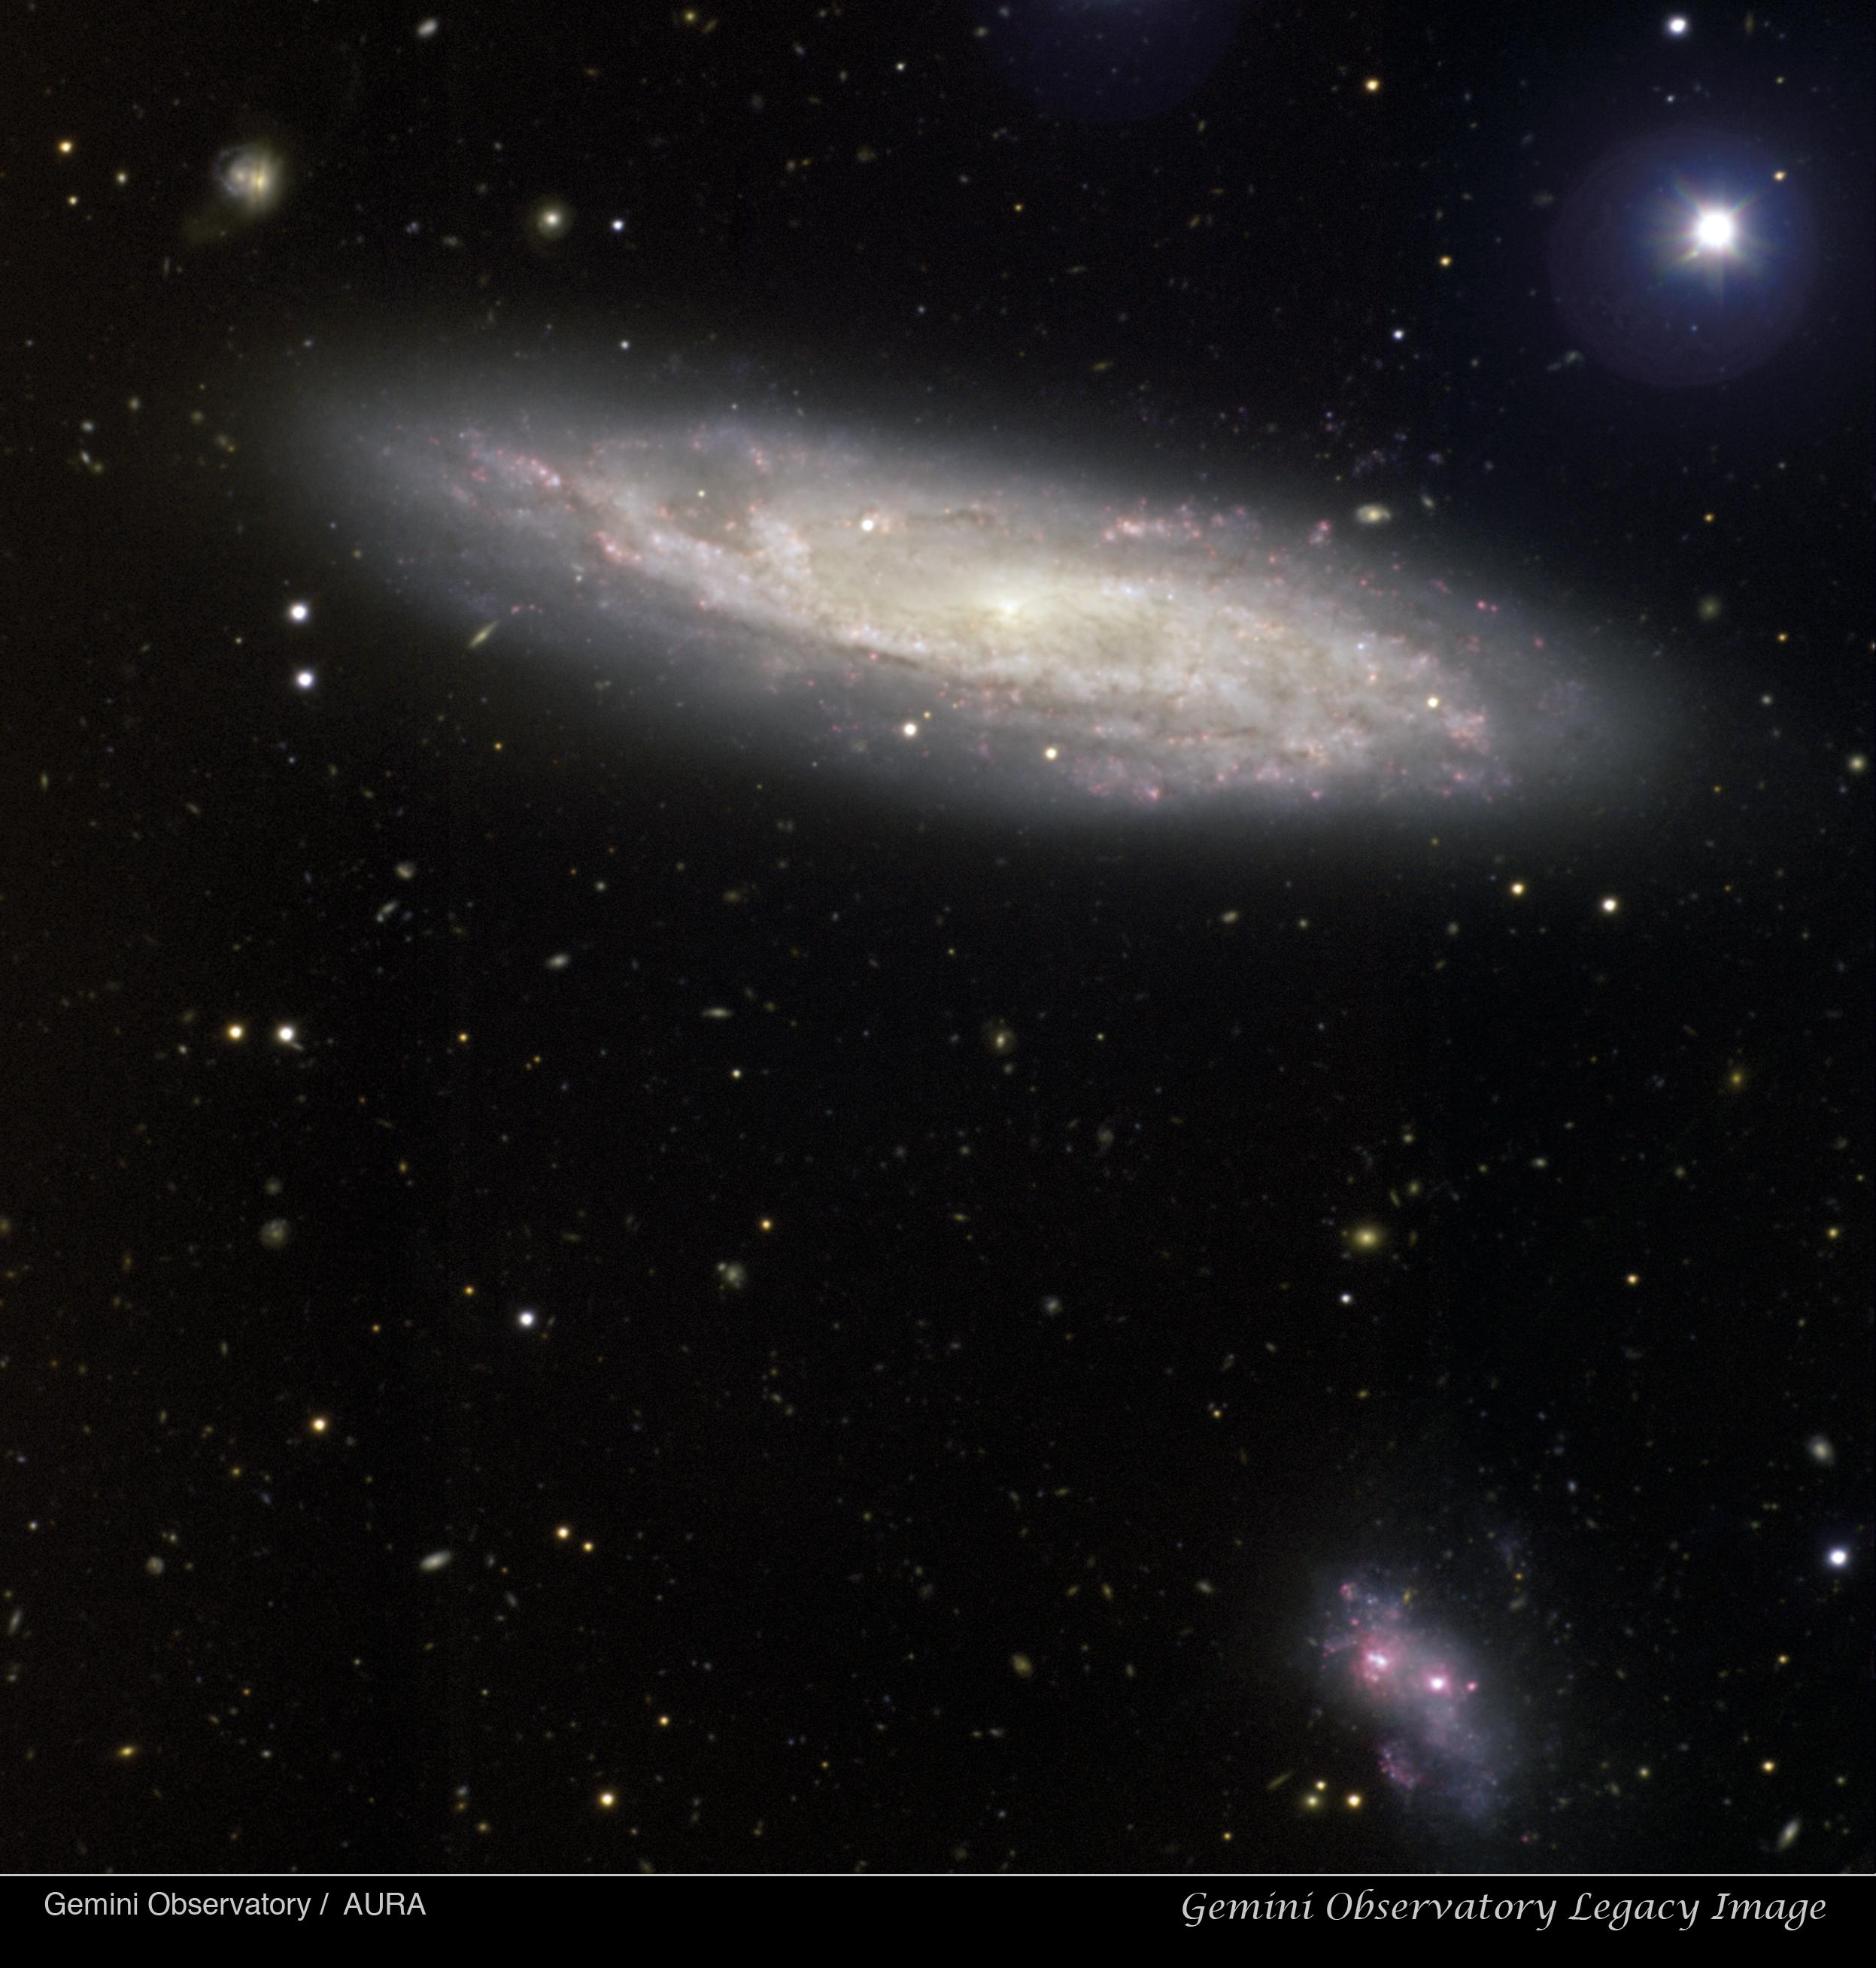 NGC 2770 with SN 2008D